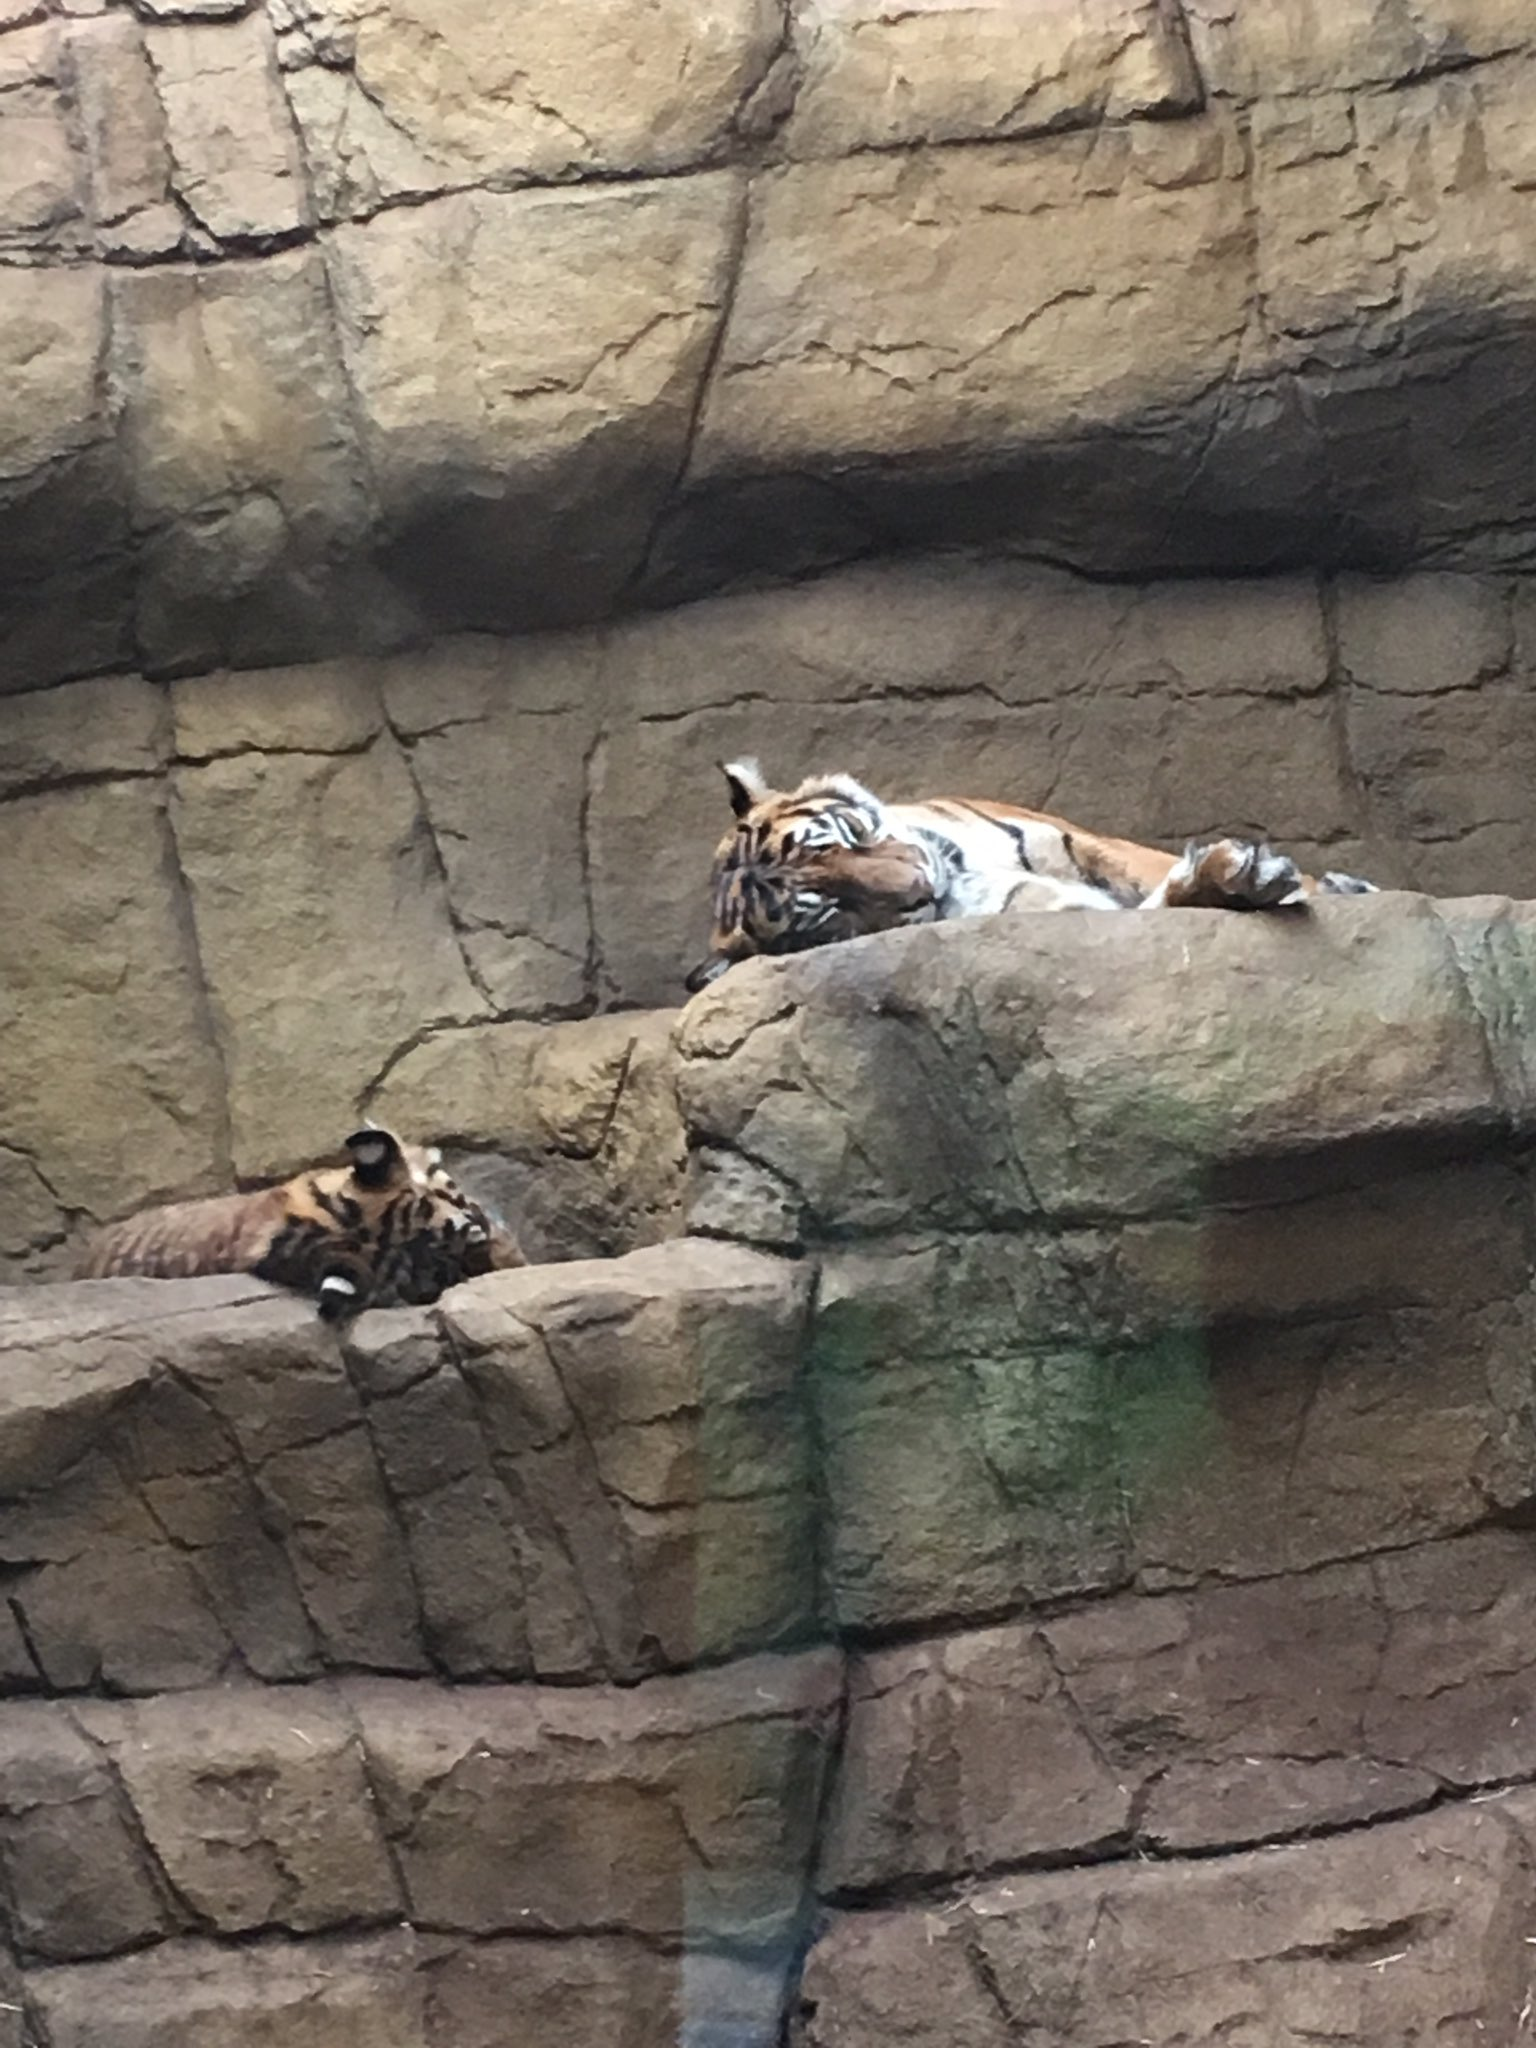 Day 8 of #30DaysWild, loving today's updates from #rainforestlive, stepped out find these beautiful guys napping @OfficialZSL @BorneoNature https://t.co/3UfdwcpmYo